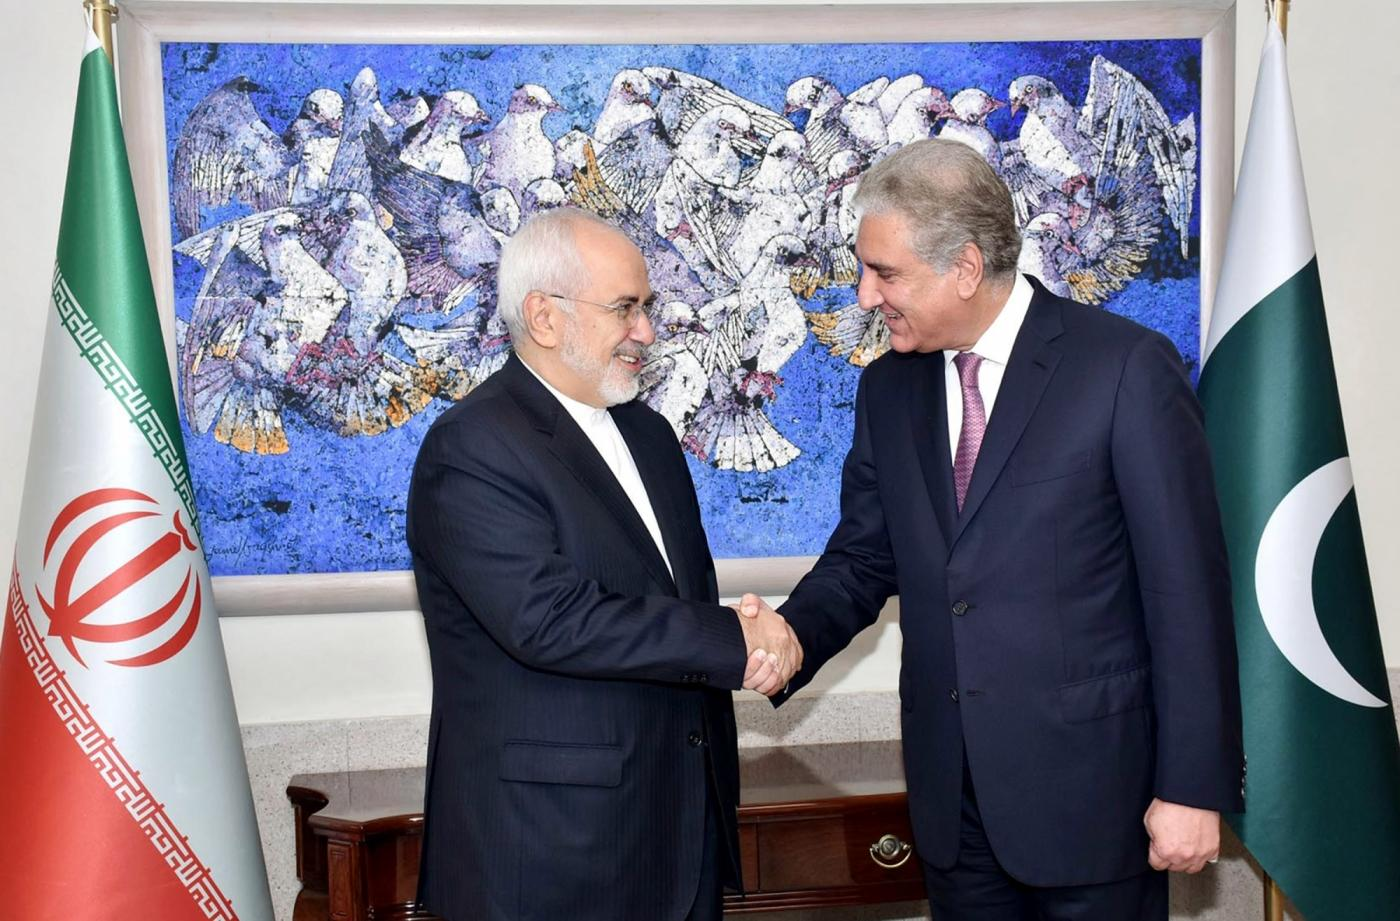 ISLAMABAD, Aug. 31, 2018 (Xinhua) -- Photo released by Pakistan's Press Information Department (PID) on Aug. 31, 2018 shows that Pakistani Foreign Minister Shah Mahmood Qureshi (R) shakes hand with his Iranian counterpart Mohammad Javad Zarif in Islamabad, capital of Pakistan. Pakistan on Friday expressed its support to Iran on the international nuclear deal related to the Iranian nuclear issue during talks between foreign ministers of the two countries, the Foreign Ministry said. (Xinhua/PID/IANS) by .